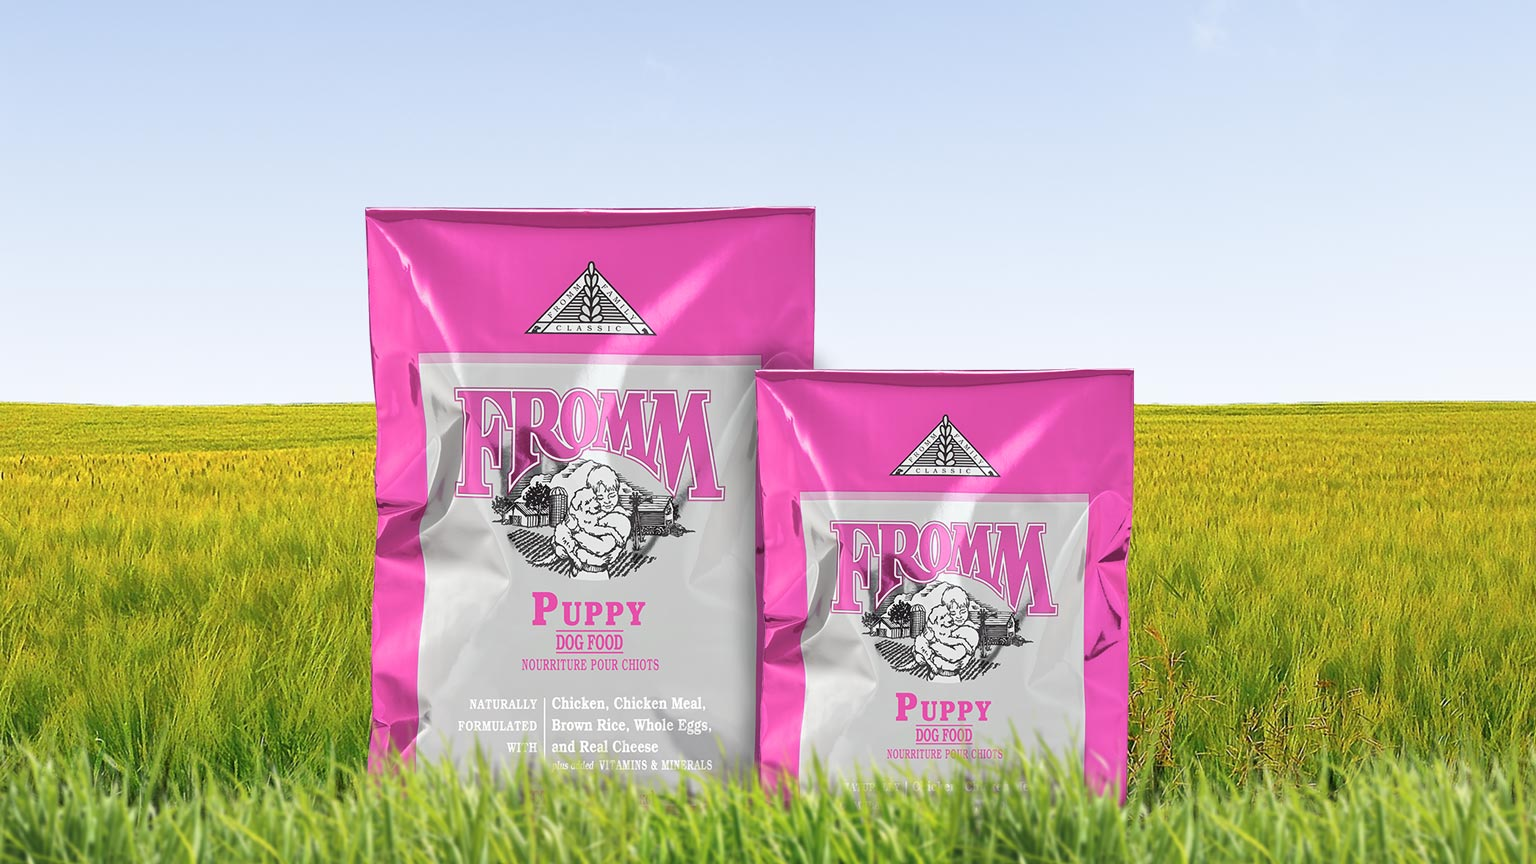 Fromm Classic Puppy Dog Food Gofromm Com Fromm Pet